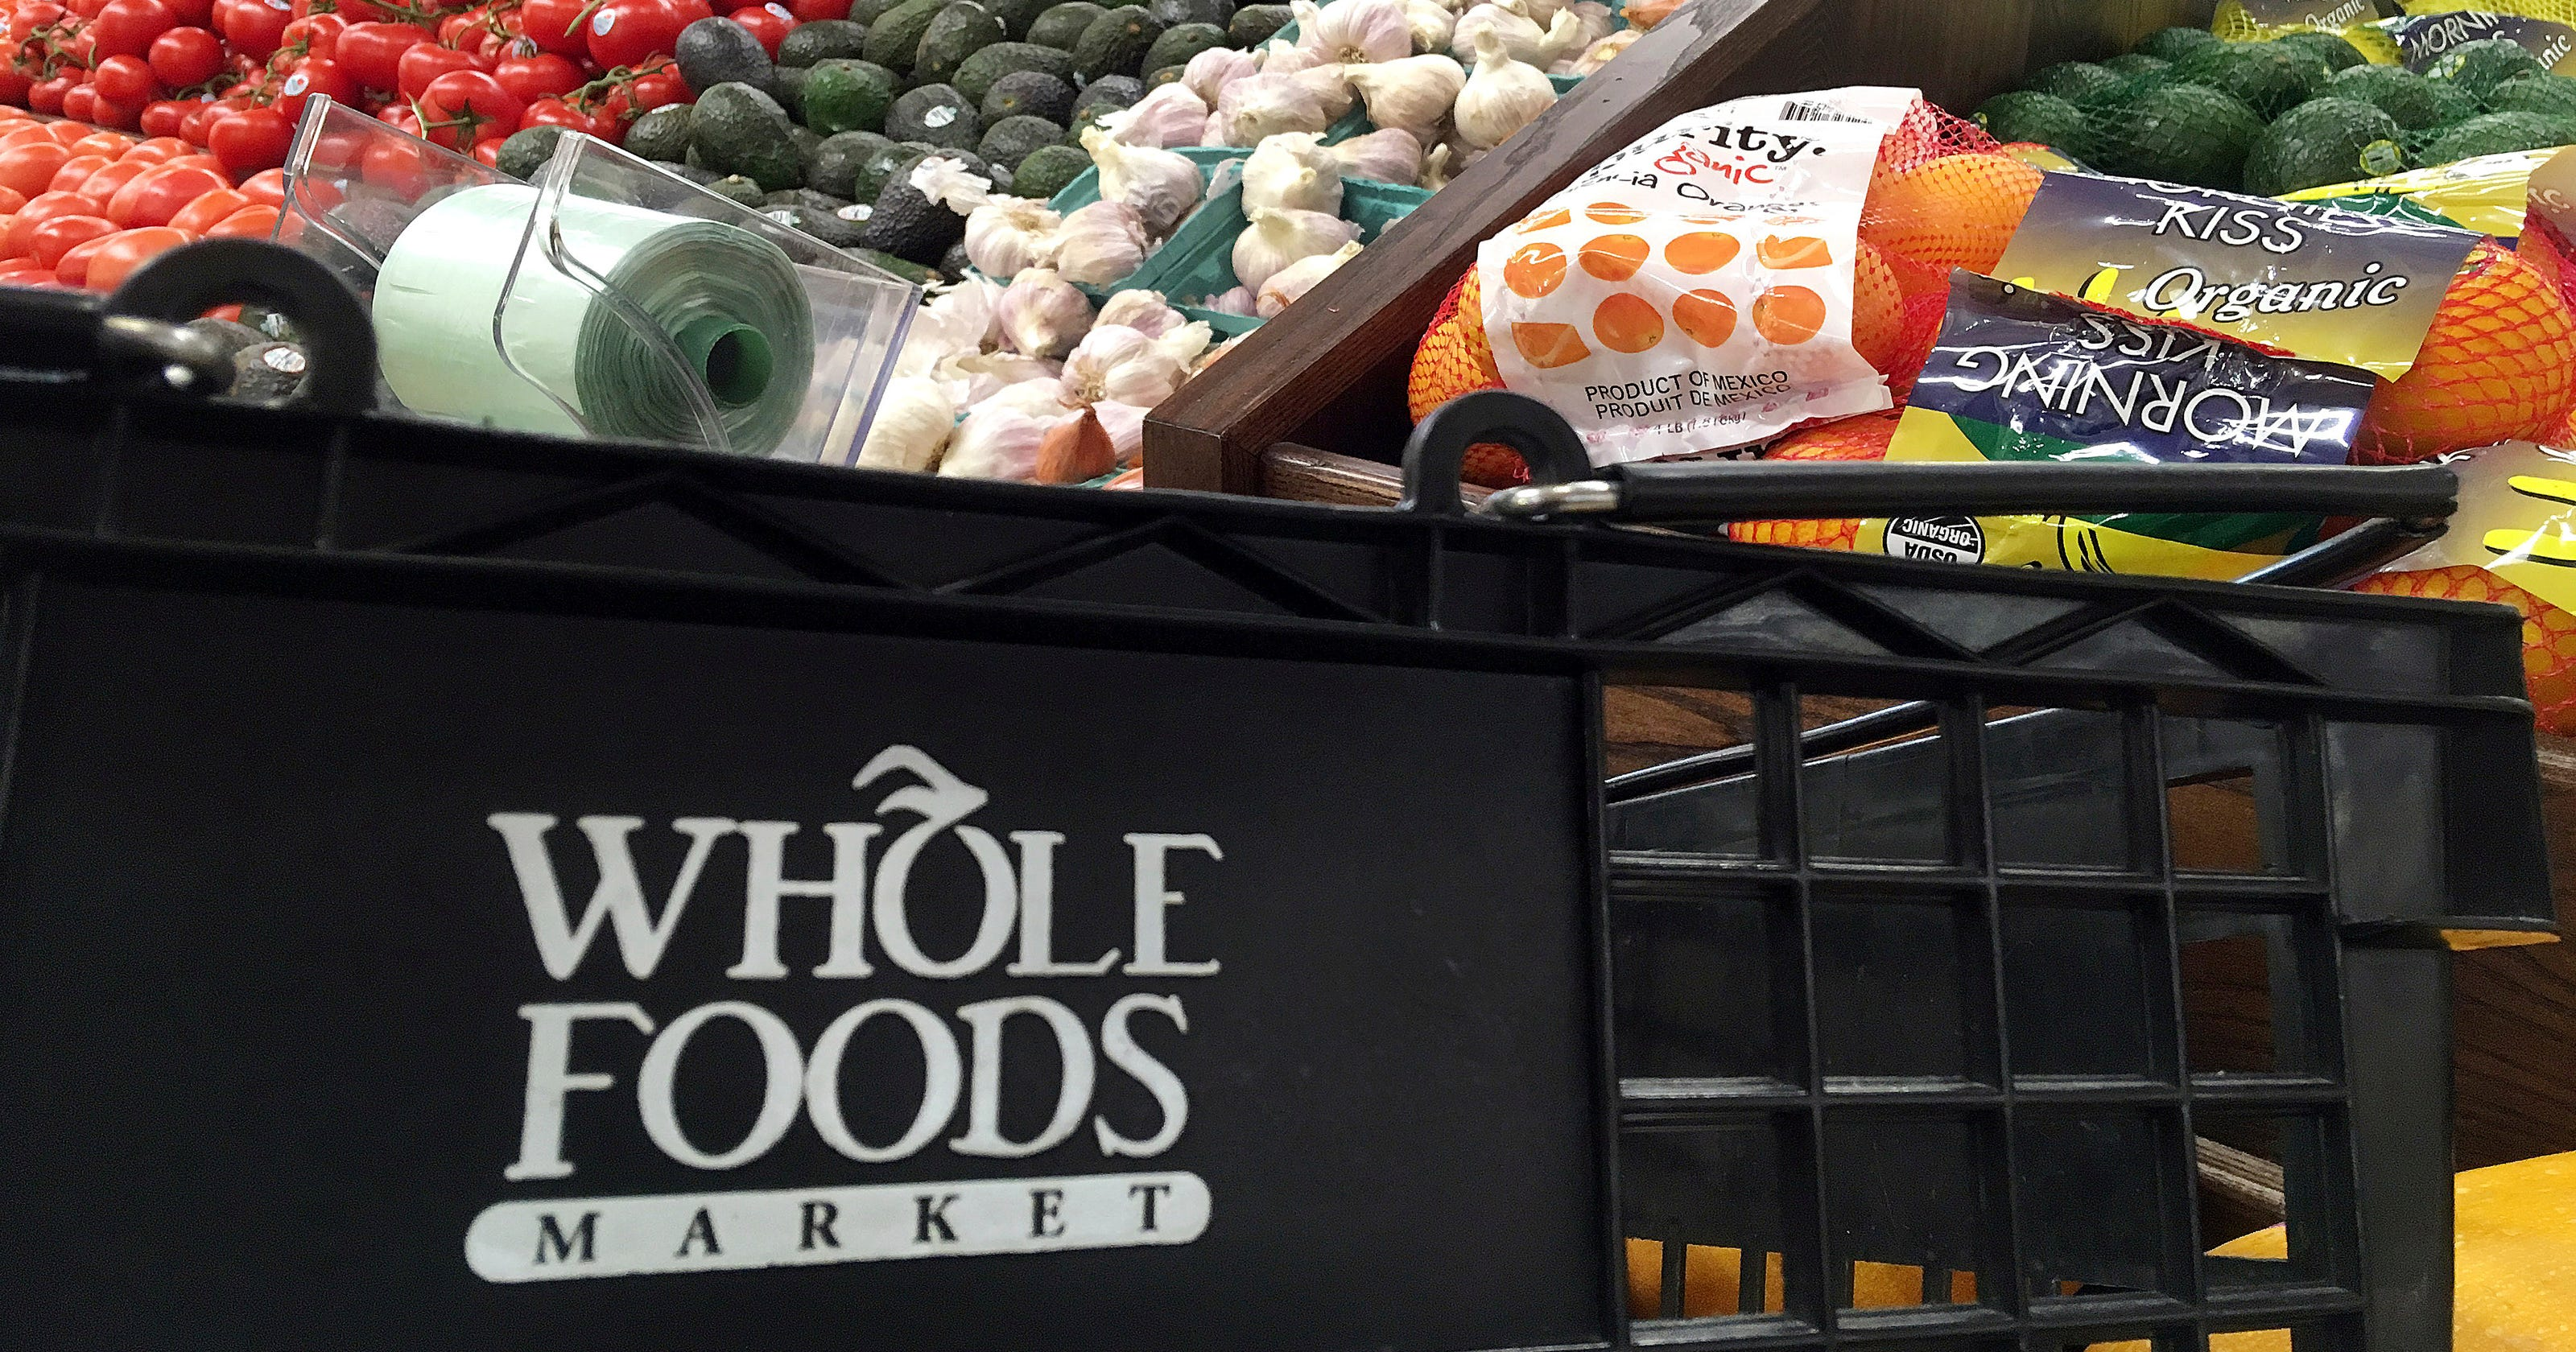 Will Prime Members Get Discounts At Whole Foods